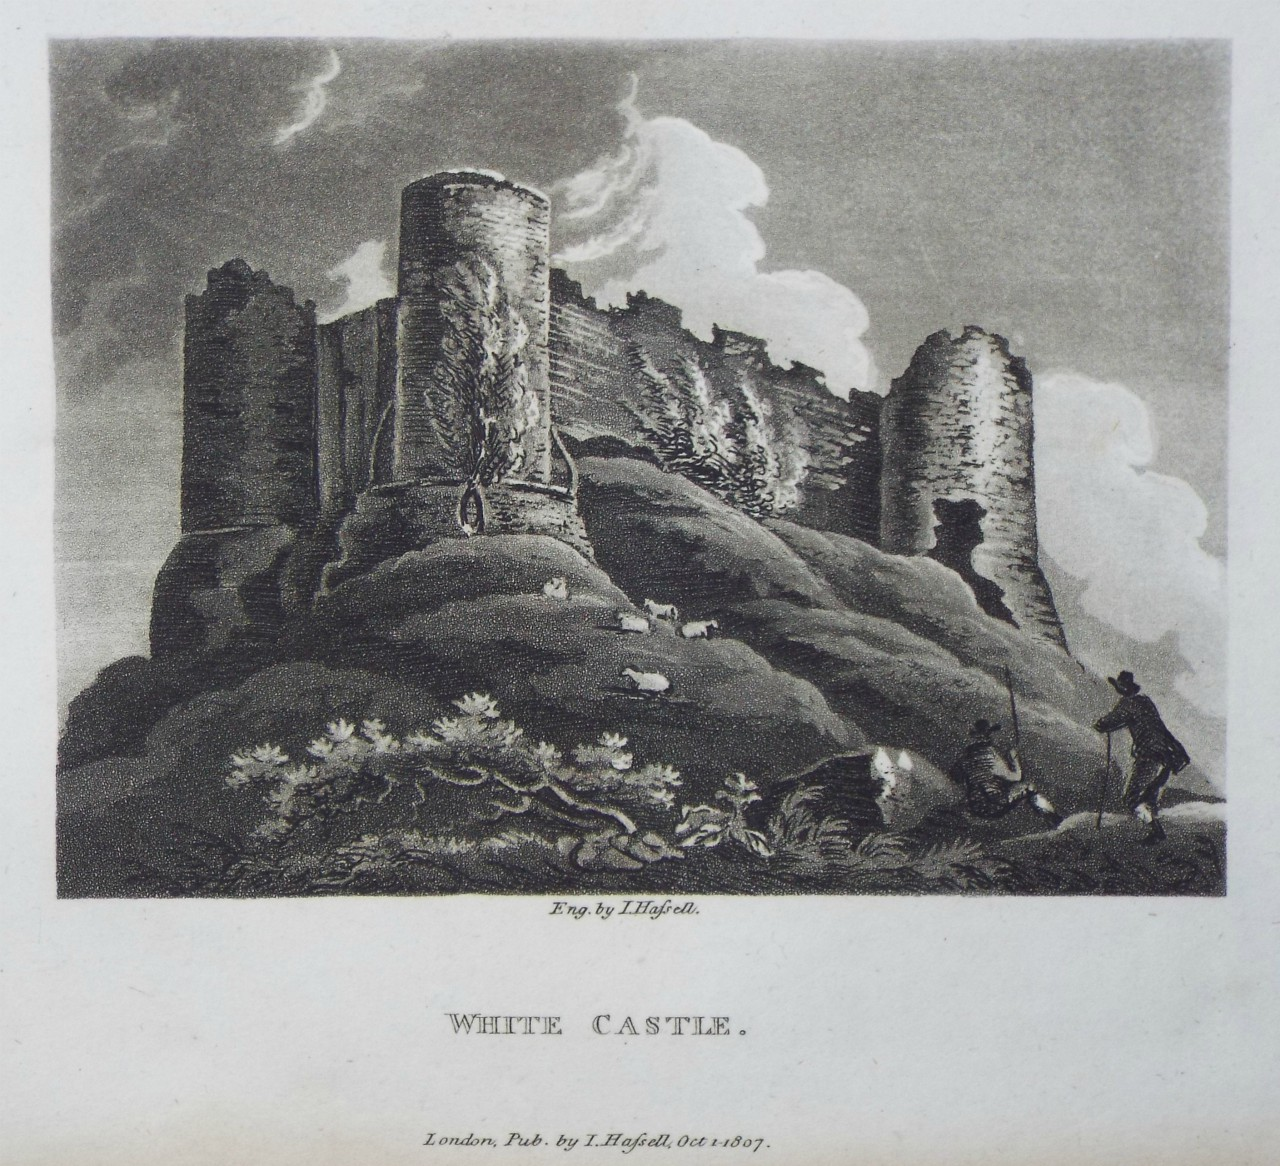 Aquatint - White Castle. - Hassell